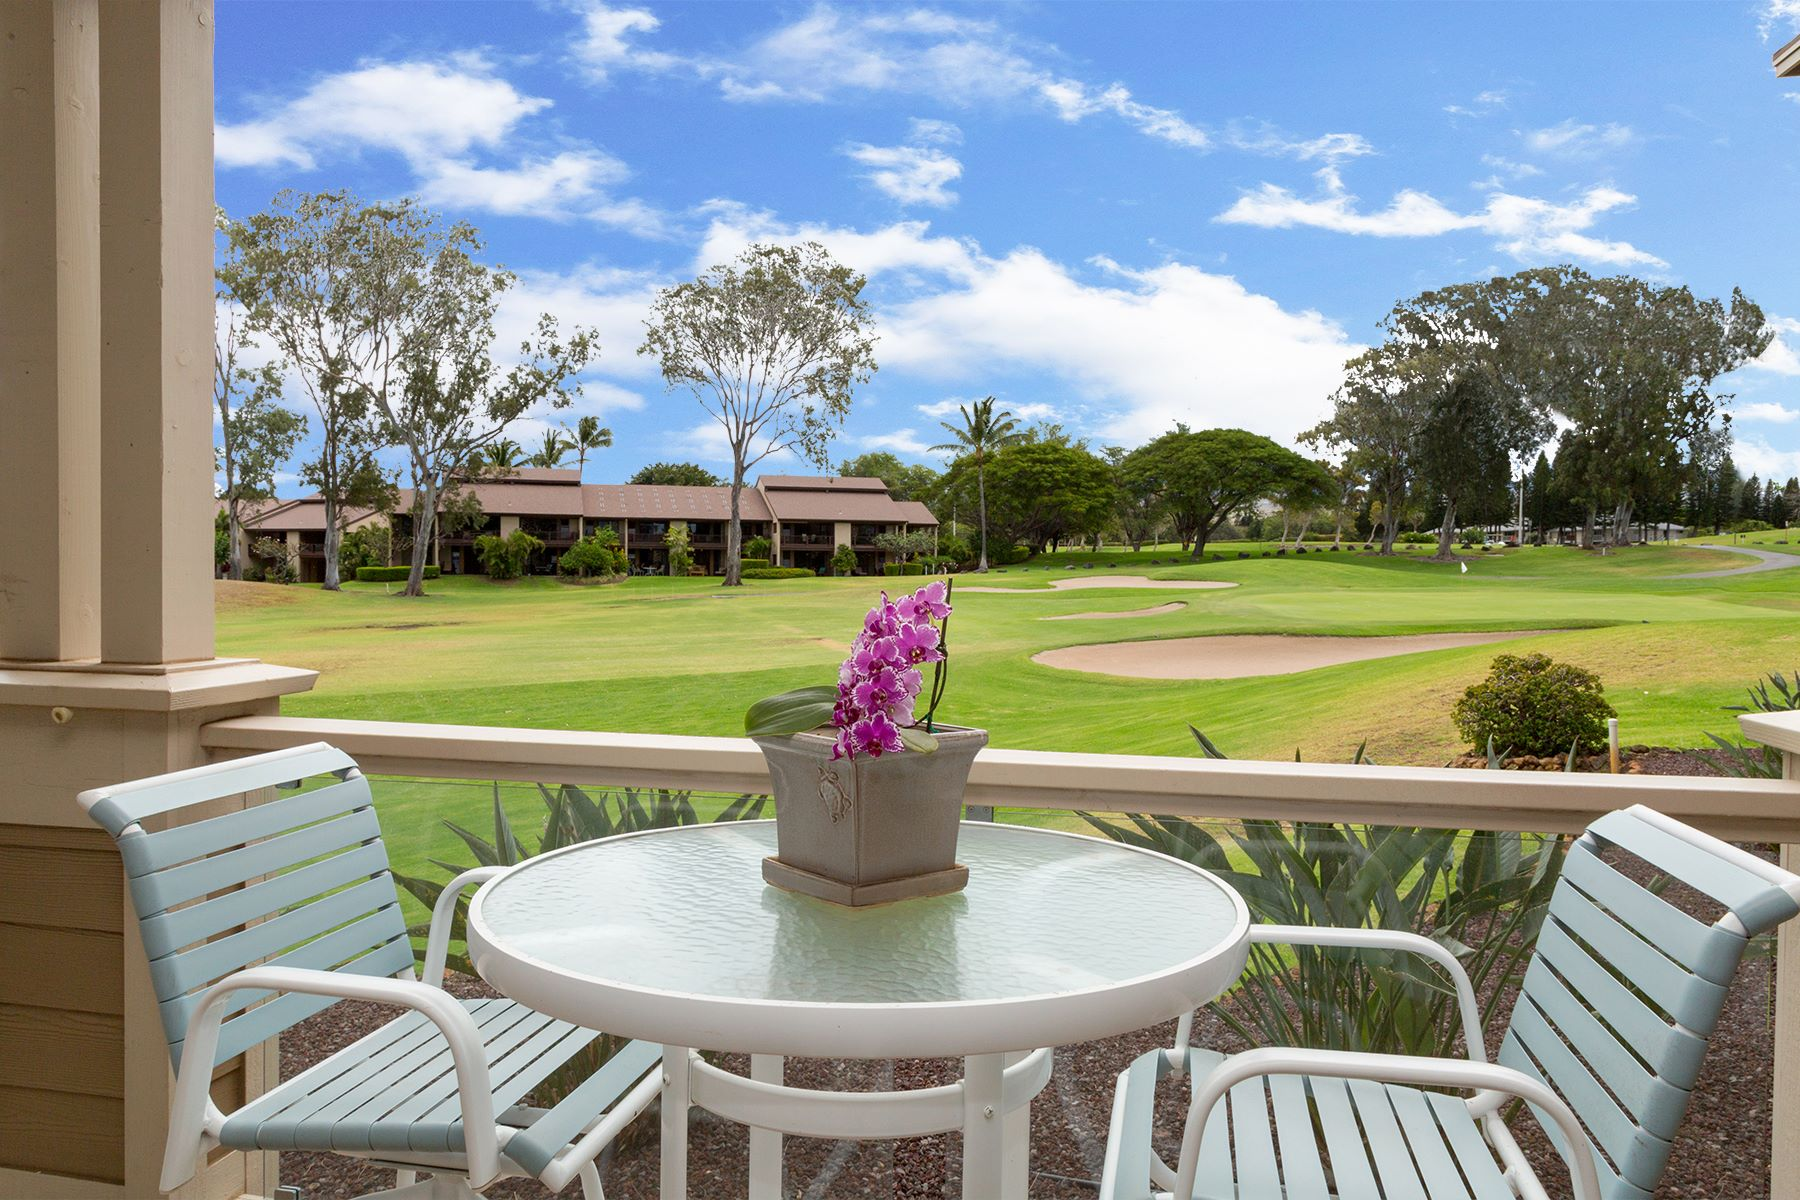 townhouses for Active at Pointe at Waikoloa 68-1785 Melia St. Apt 19 Waikoloa, Hawaii 96738 United States